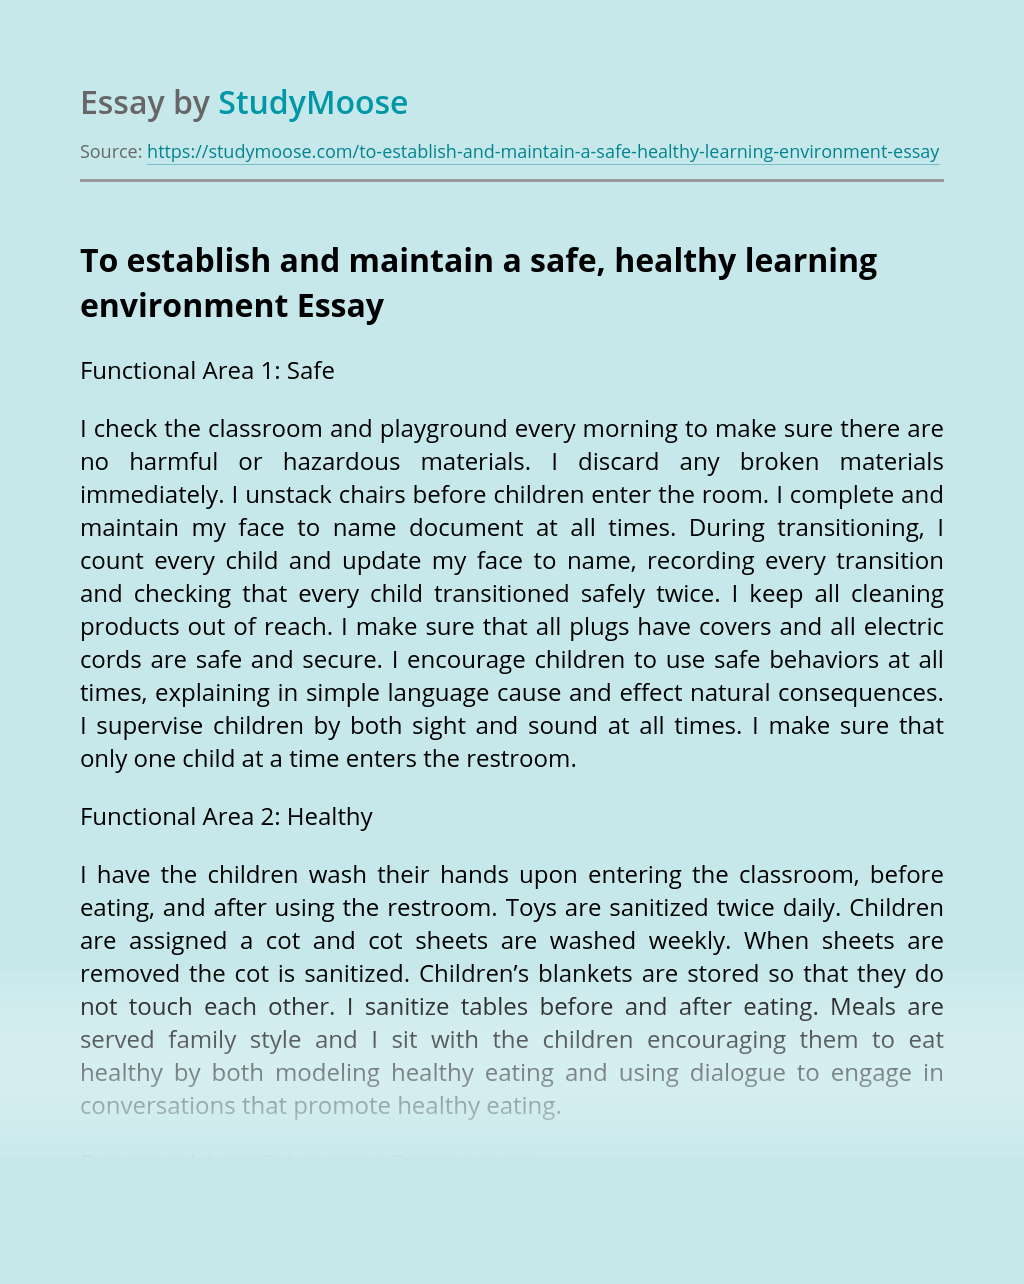 To establish and maintain a safe, healthy learning environment